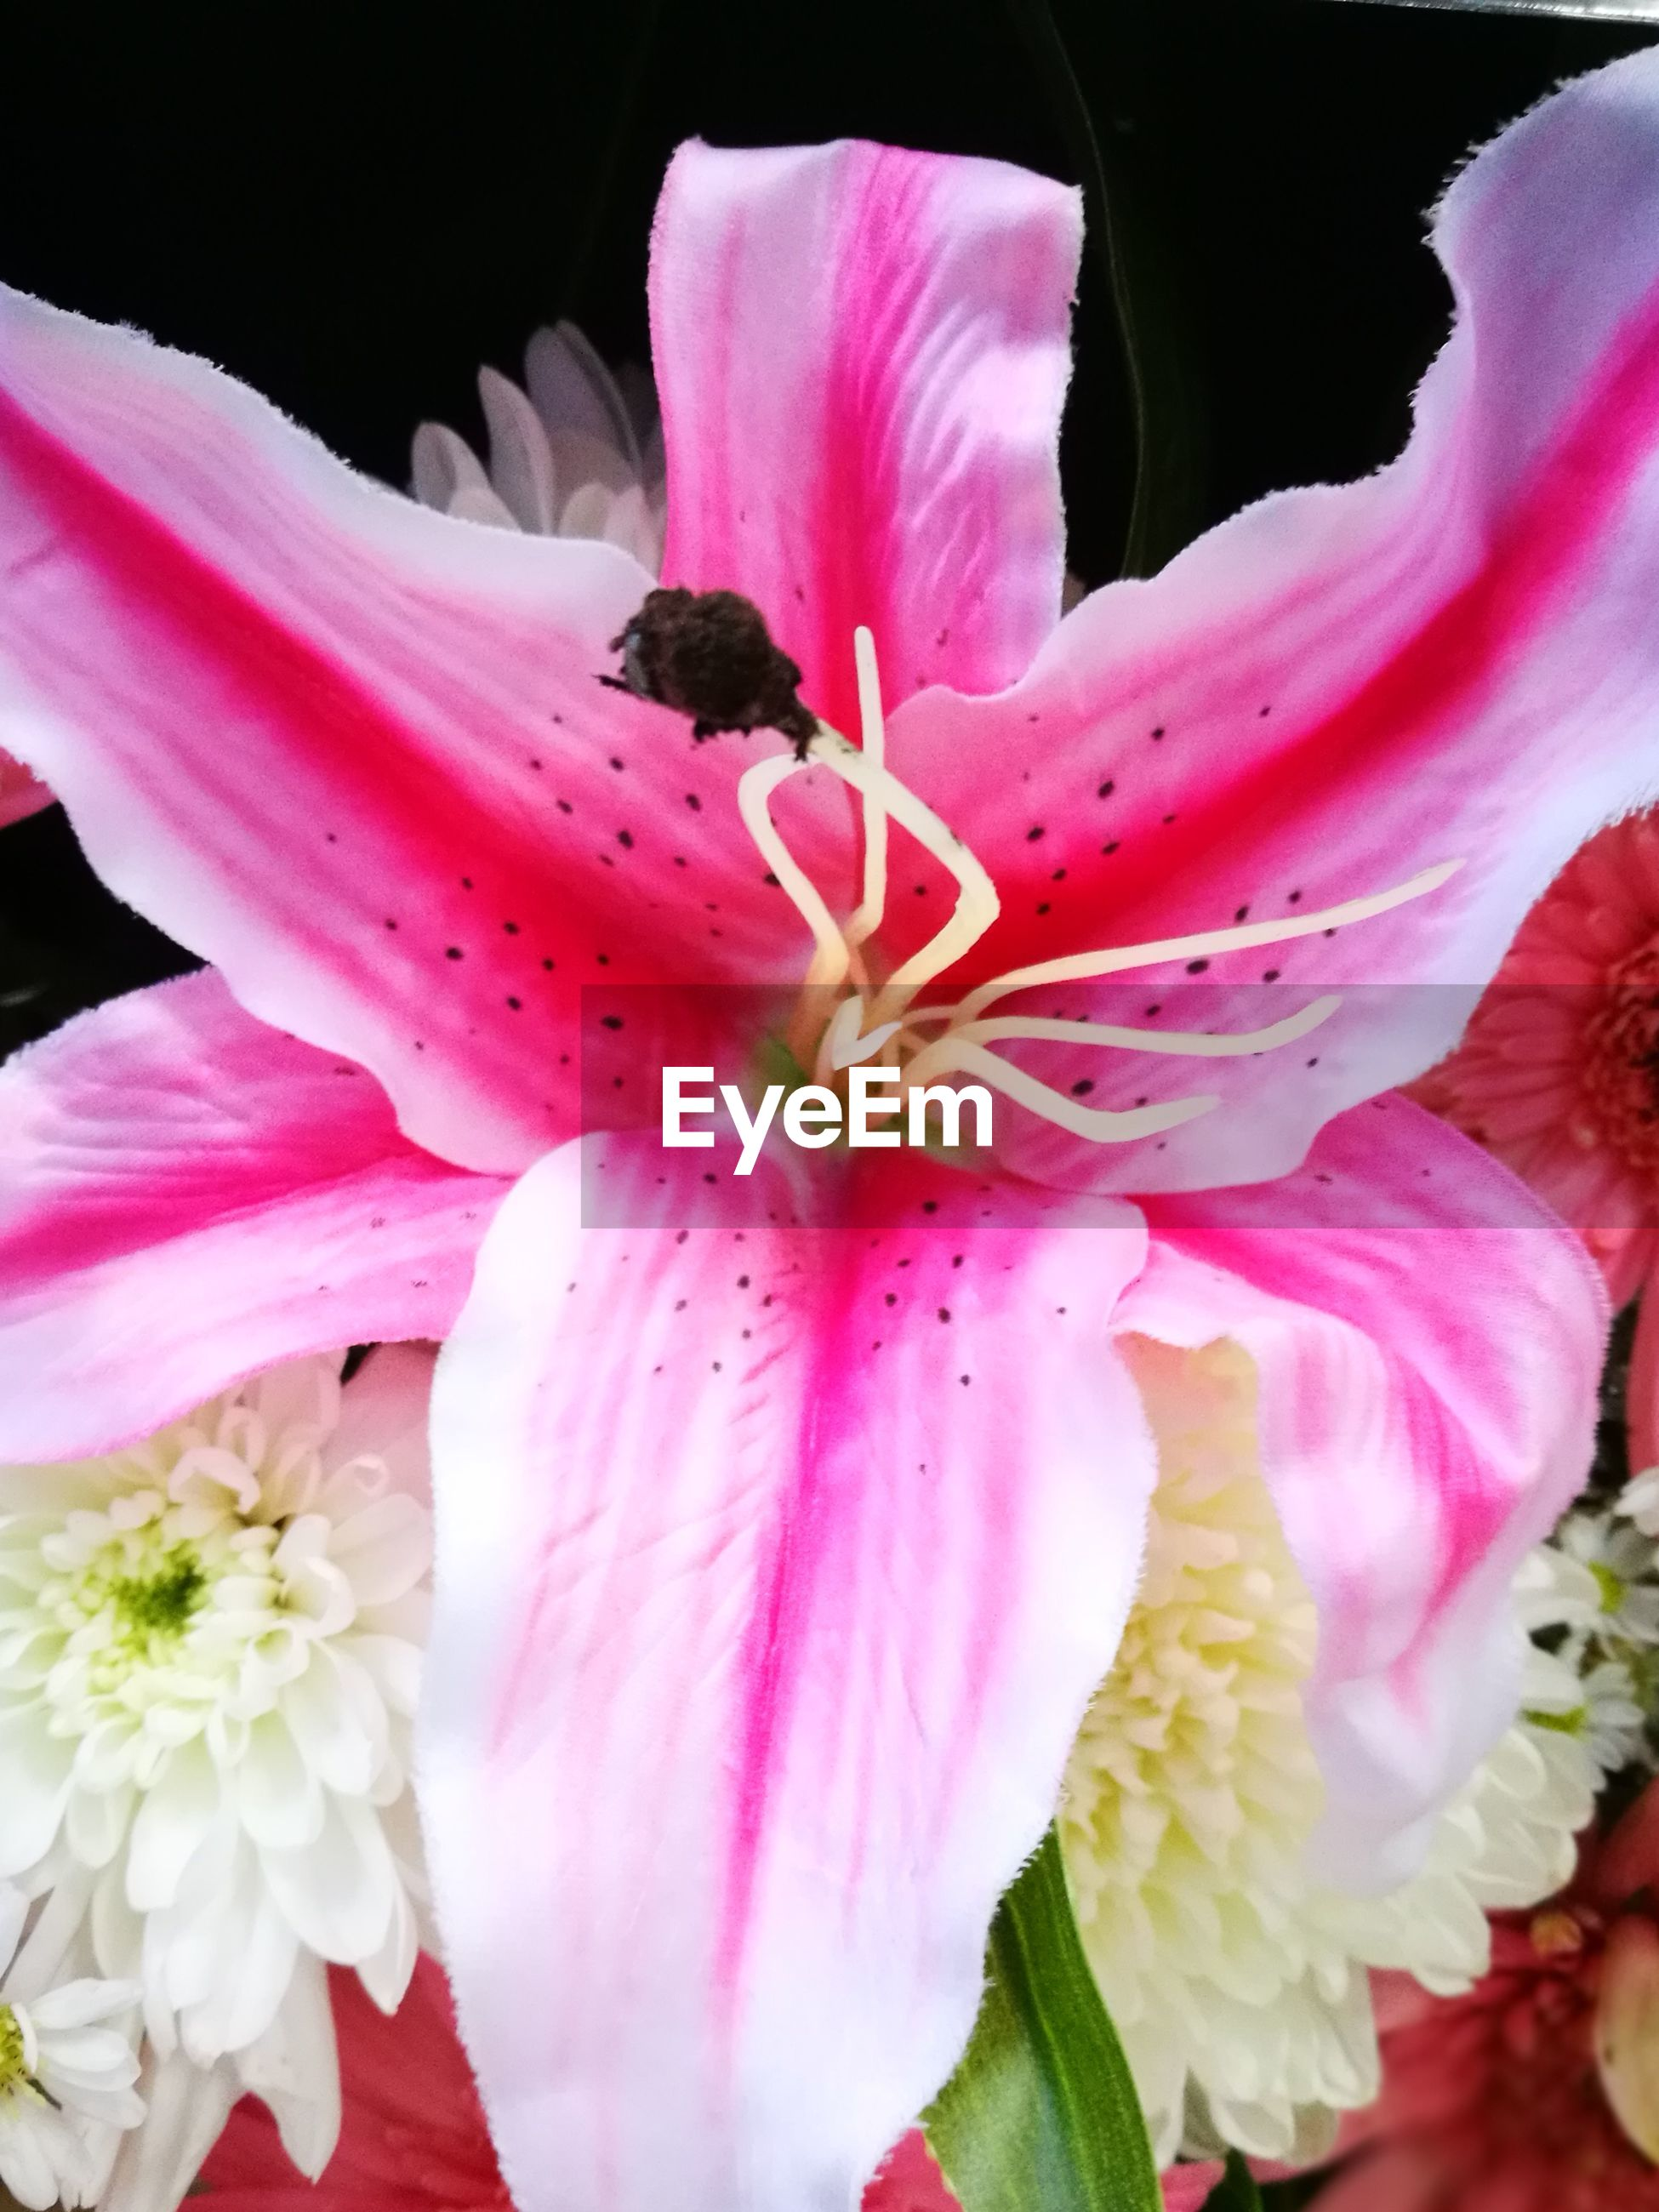 flower, petal, fragility, flower head, beauty in nature, pink color, freshness, no people, growth, nature, close-up, pollen, stamen, plant, outdoors, day, blooming, day lily